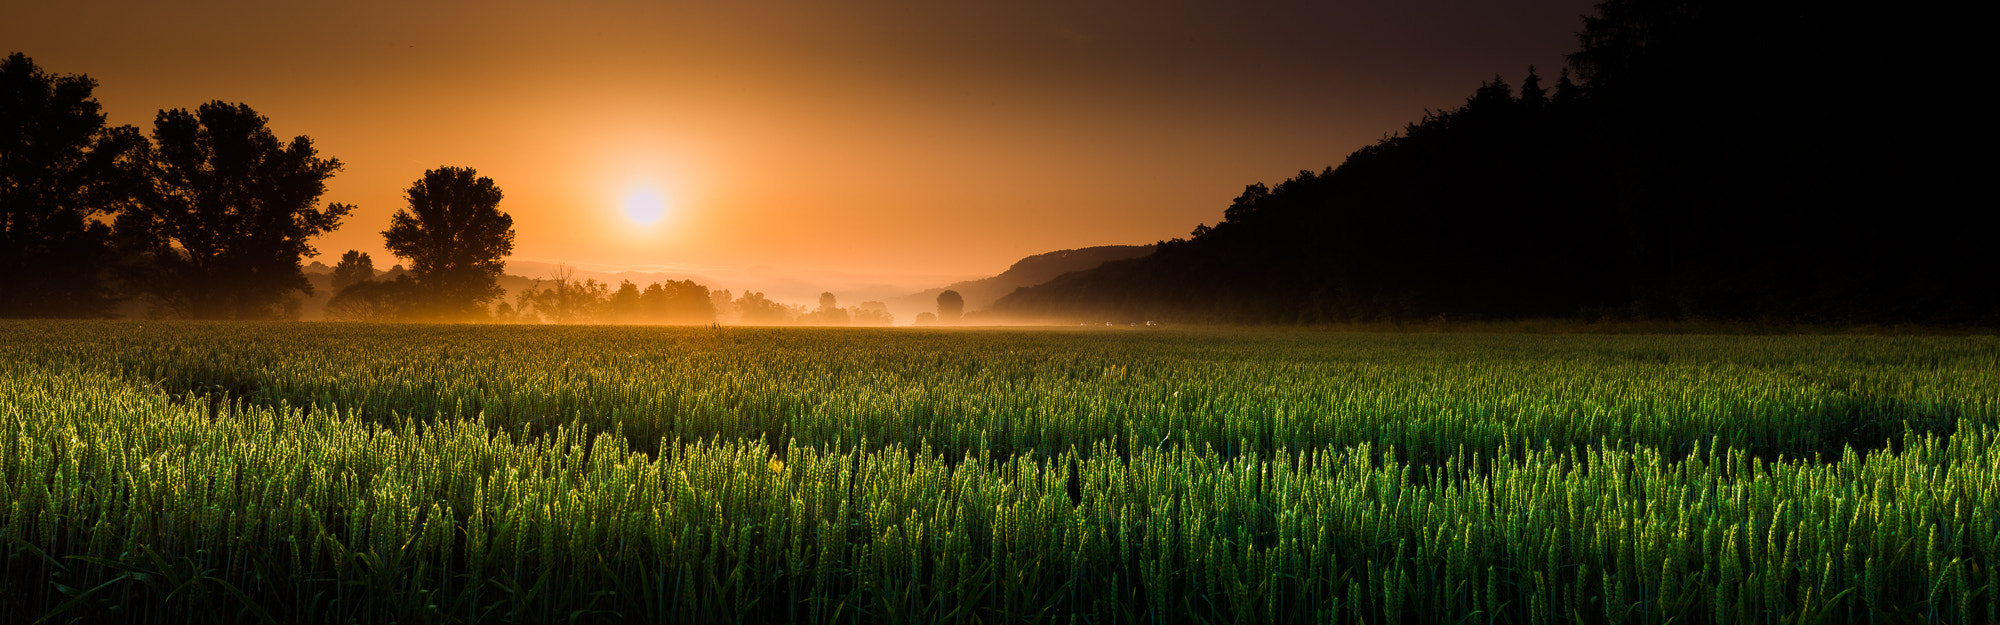 Photograph Panorama Morning Malt Germany by SutthiPhong Chaokaew on 500px